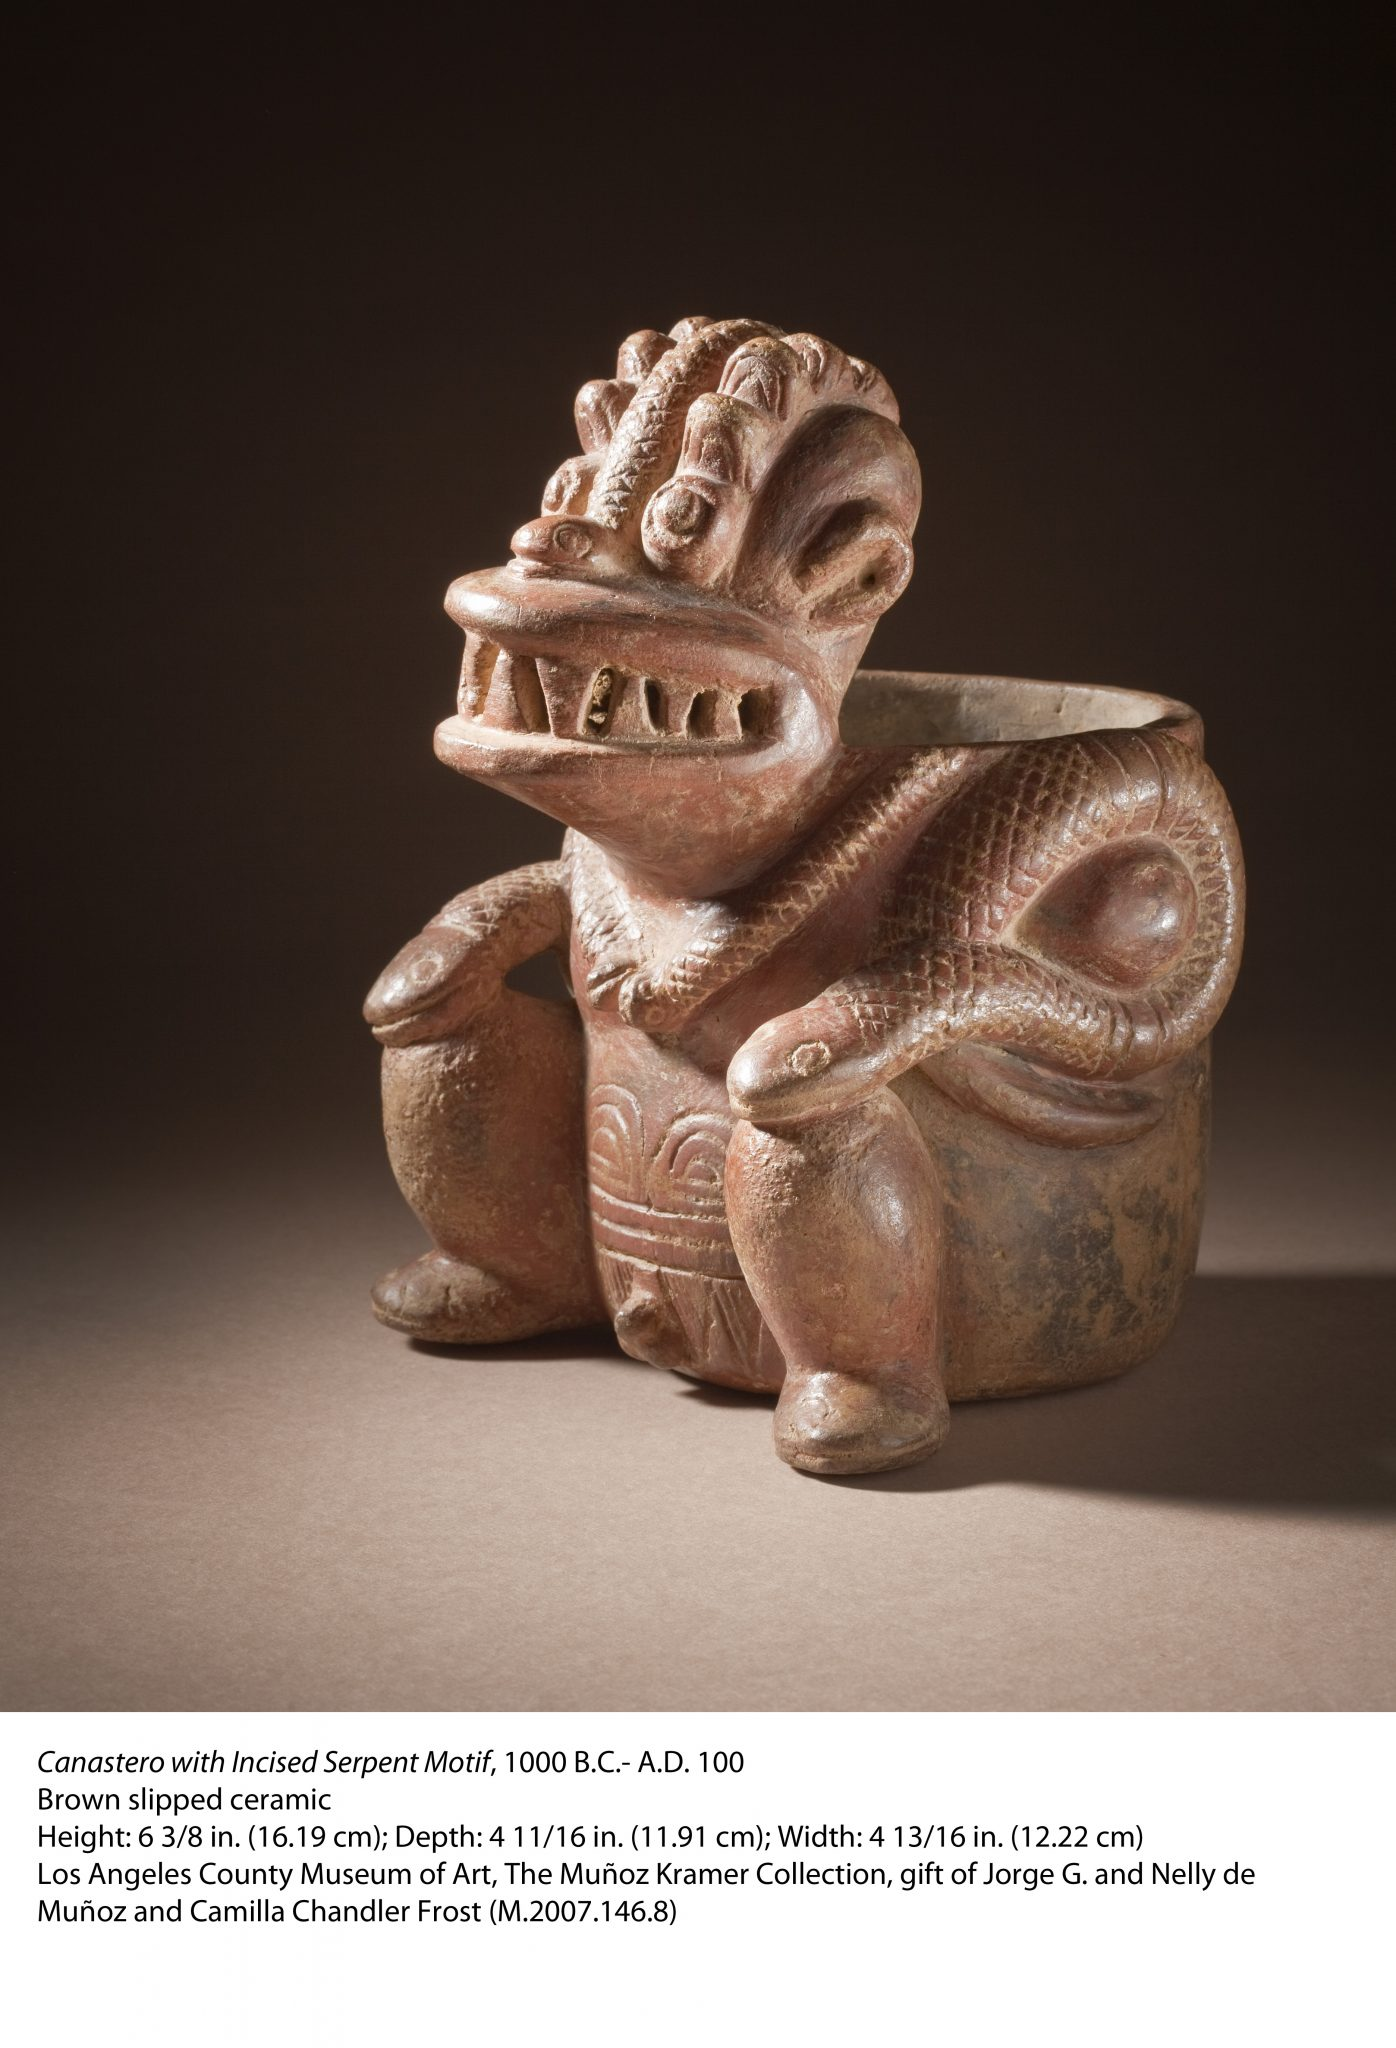 Ancient artifacts discovered in Colombia